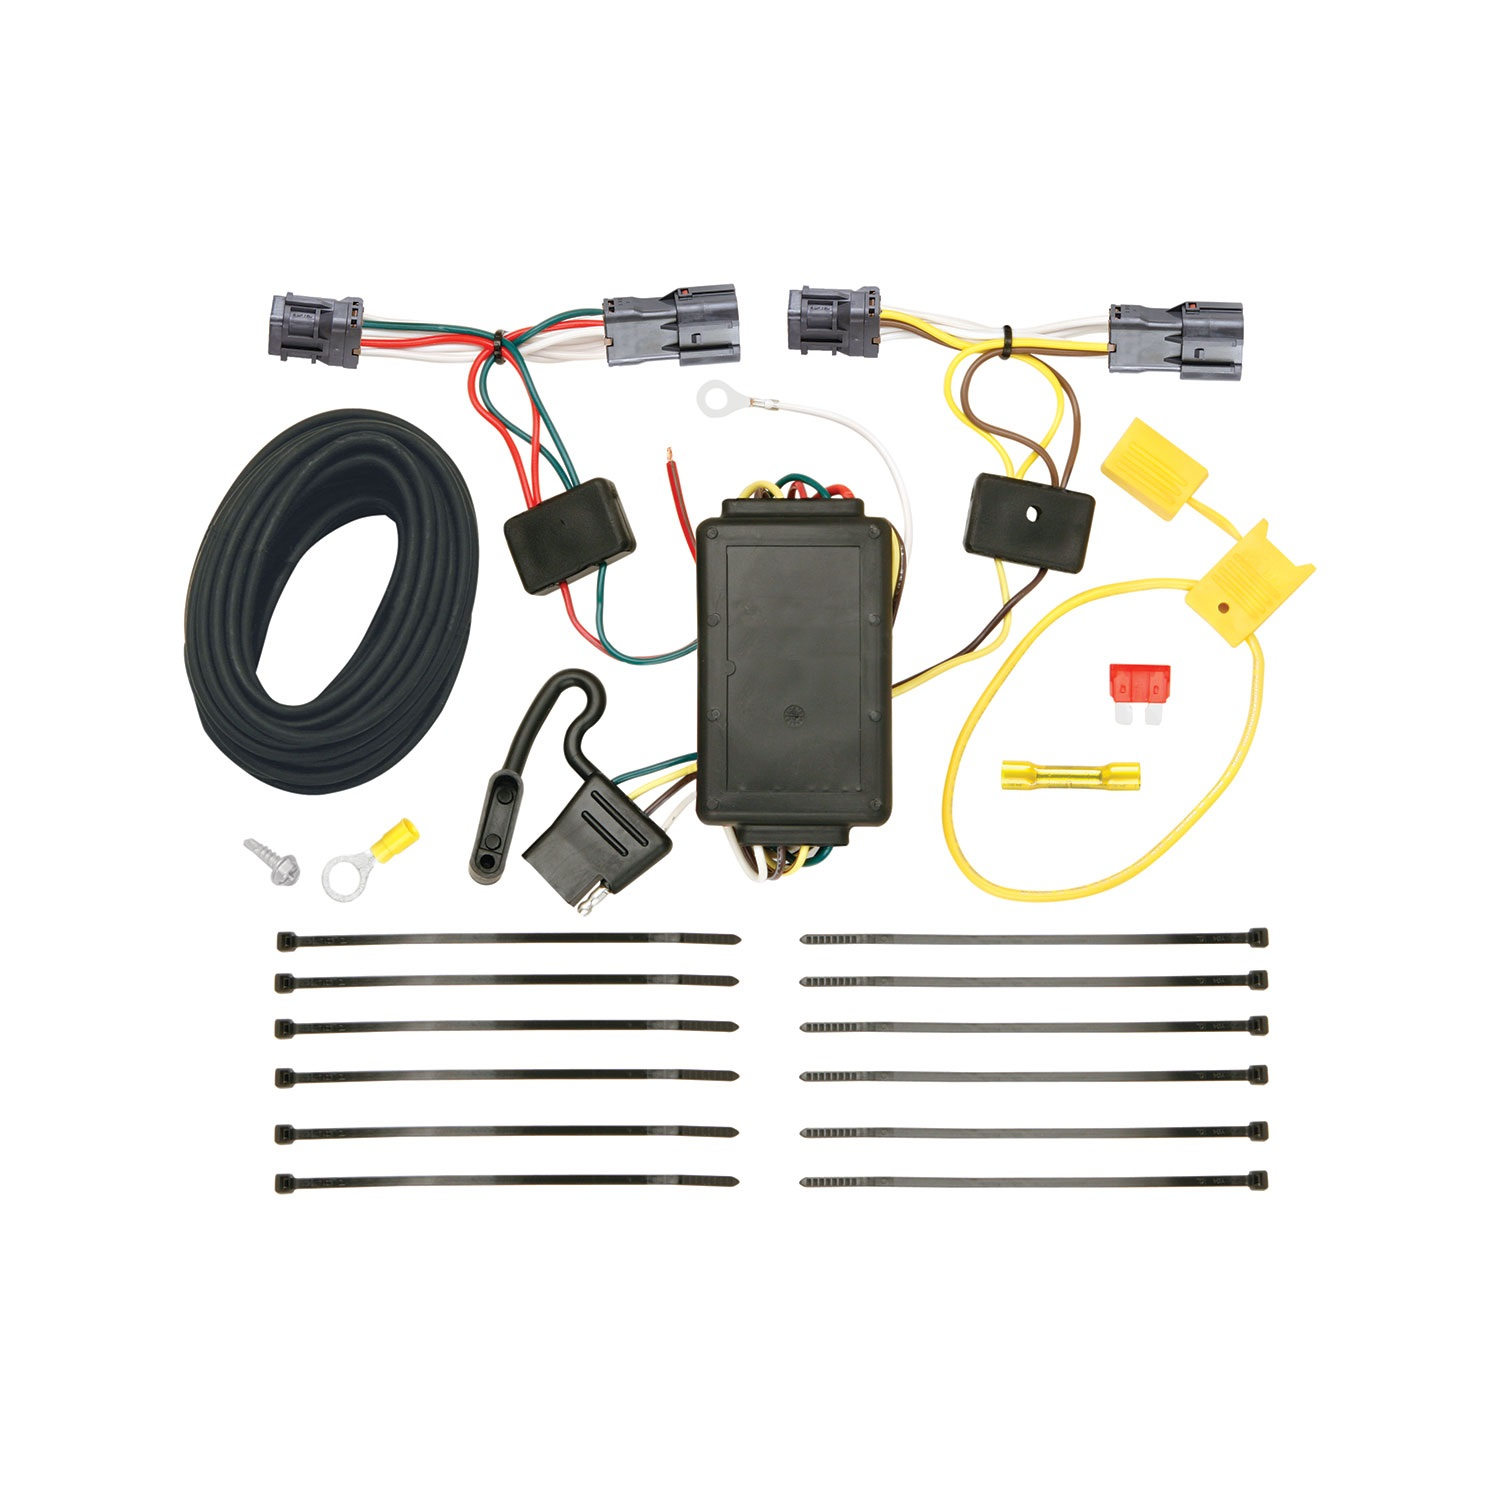 10-C Tucson T-One with Upgraded Circuit Protected Modulite Replacement Auto Part, Easy to Install